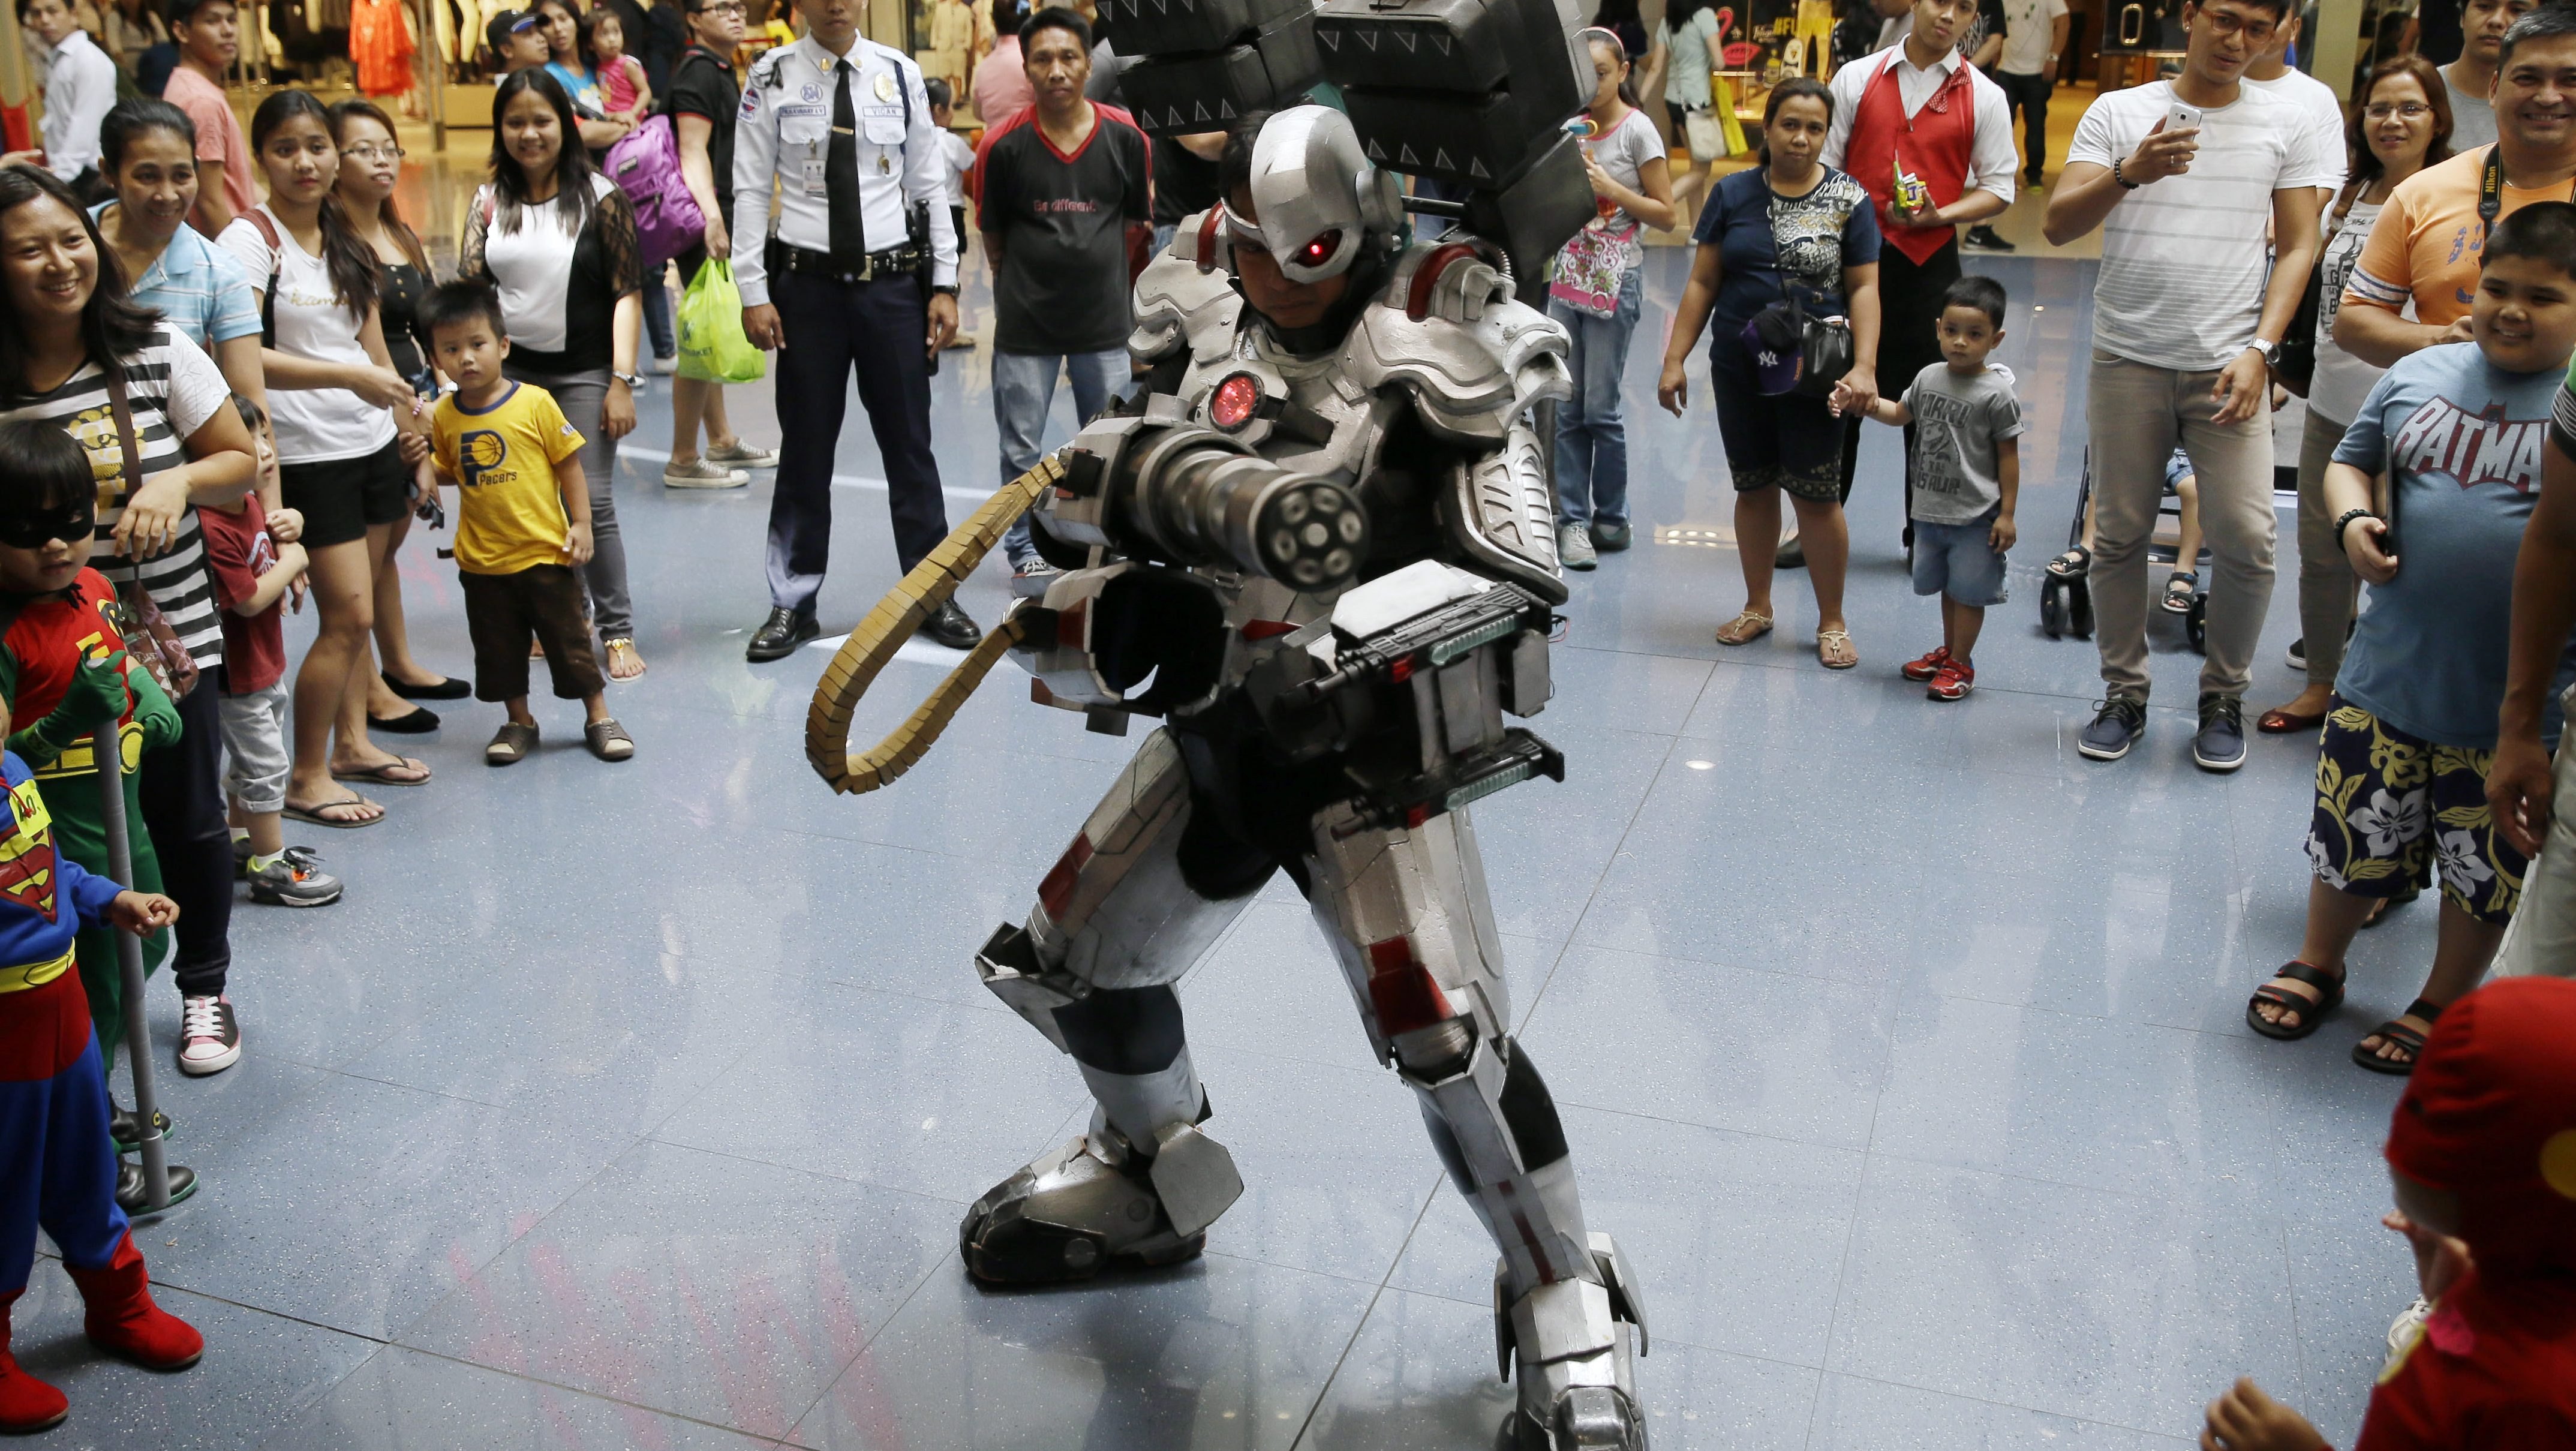 A Filipino fan, in a Cyborg costume, poses during the gathering of DC comics super heroes at the country's largest shopping mall in an attempt to establish a world record for the most number wearing their super heroes costumes Saturday, April 18, 2015 at suburban Quezon city northeast of Manila, Philippines. Hundreds of fans from babies to adults turned out for the attempt but some have to be turned down because they were not dressed as DC comic characters. The most popular are Superman and Batman. (AP Photo/Bullit Marquez)